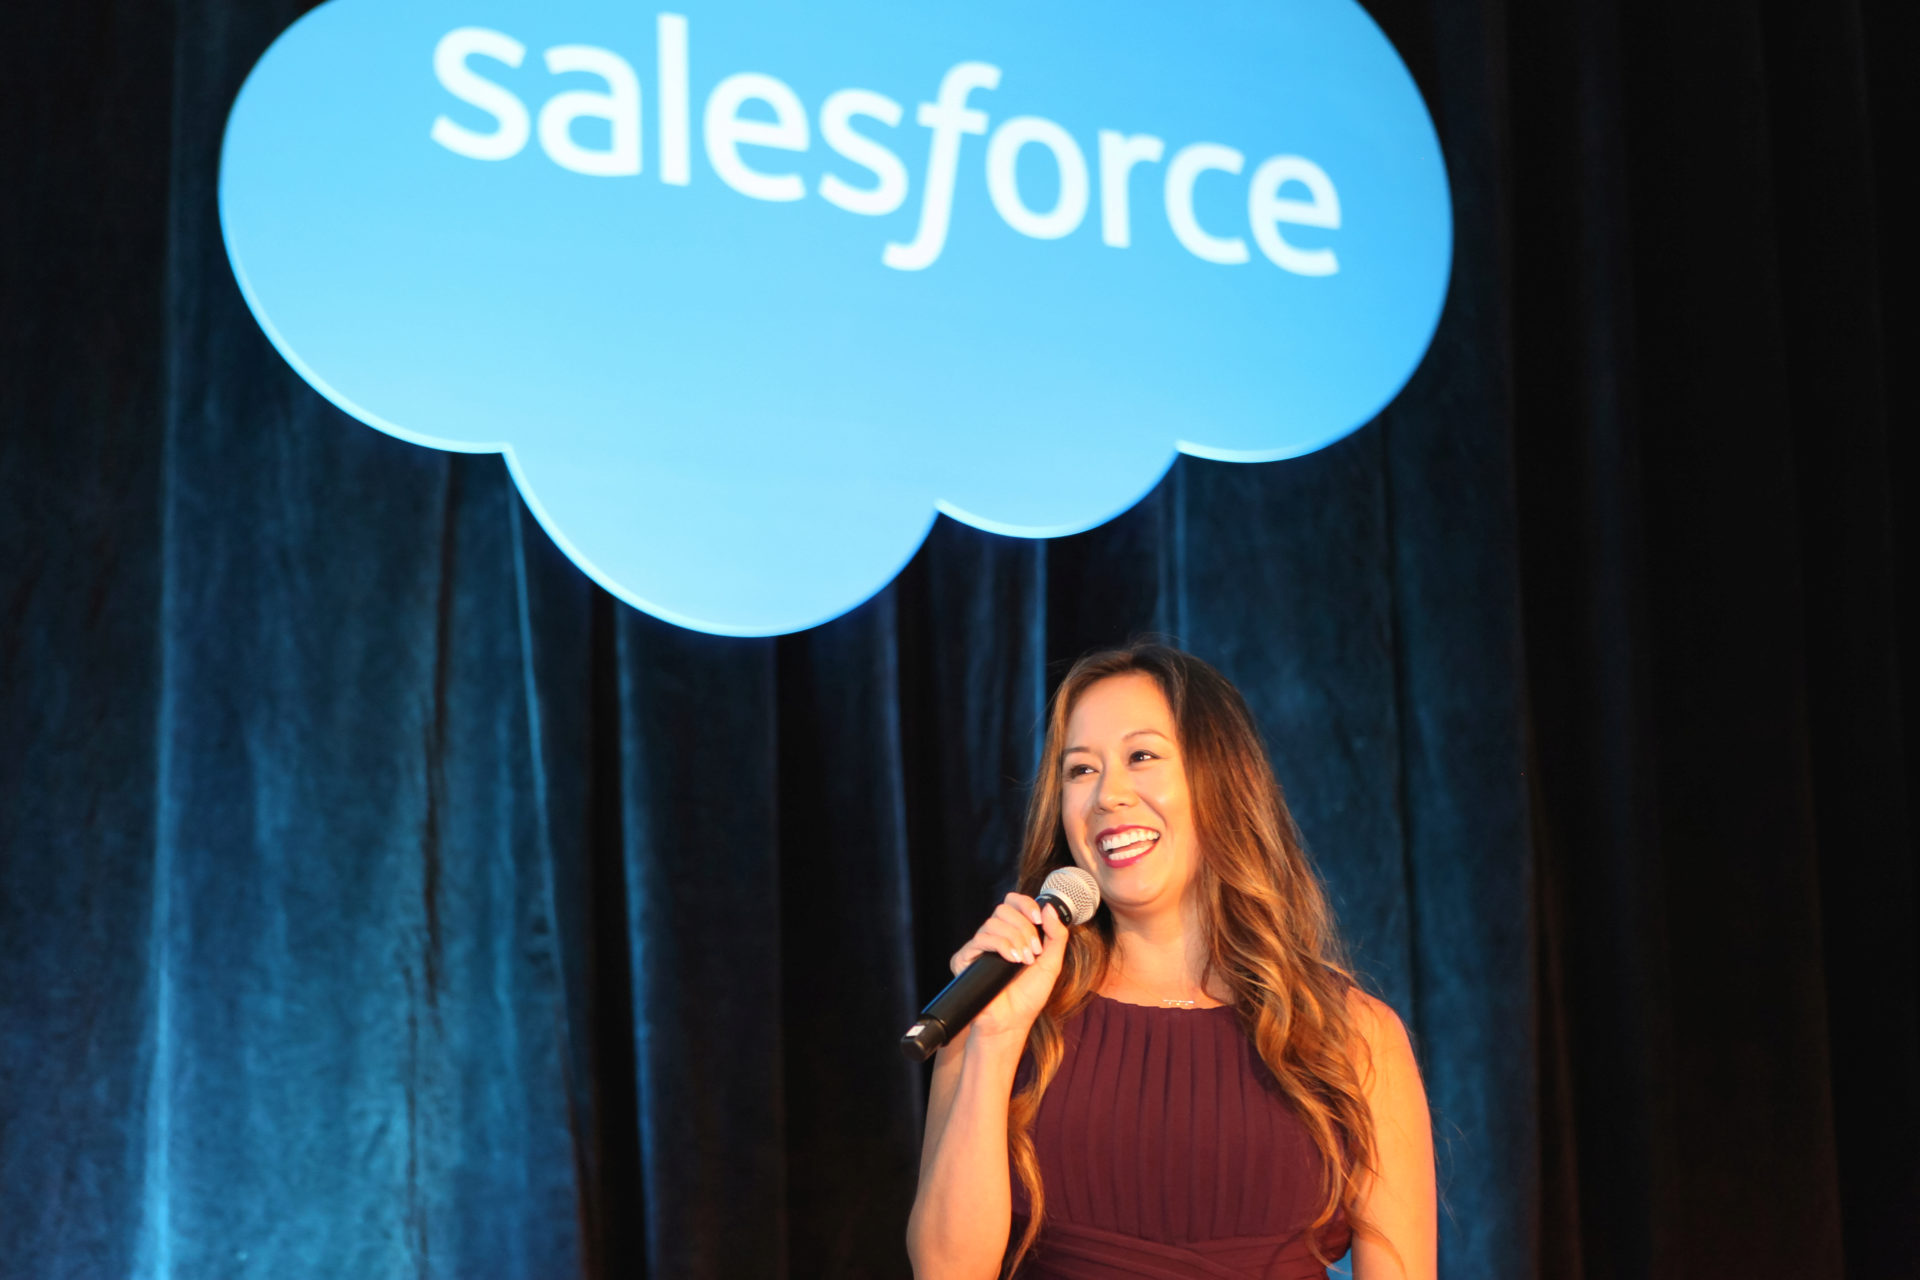 OHM-Salesforce-Buenos Aires-TopSelects-9067.jpg